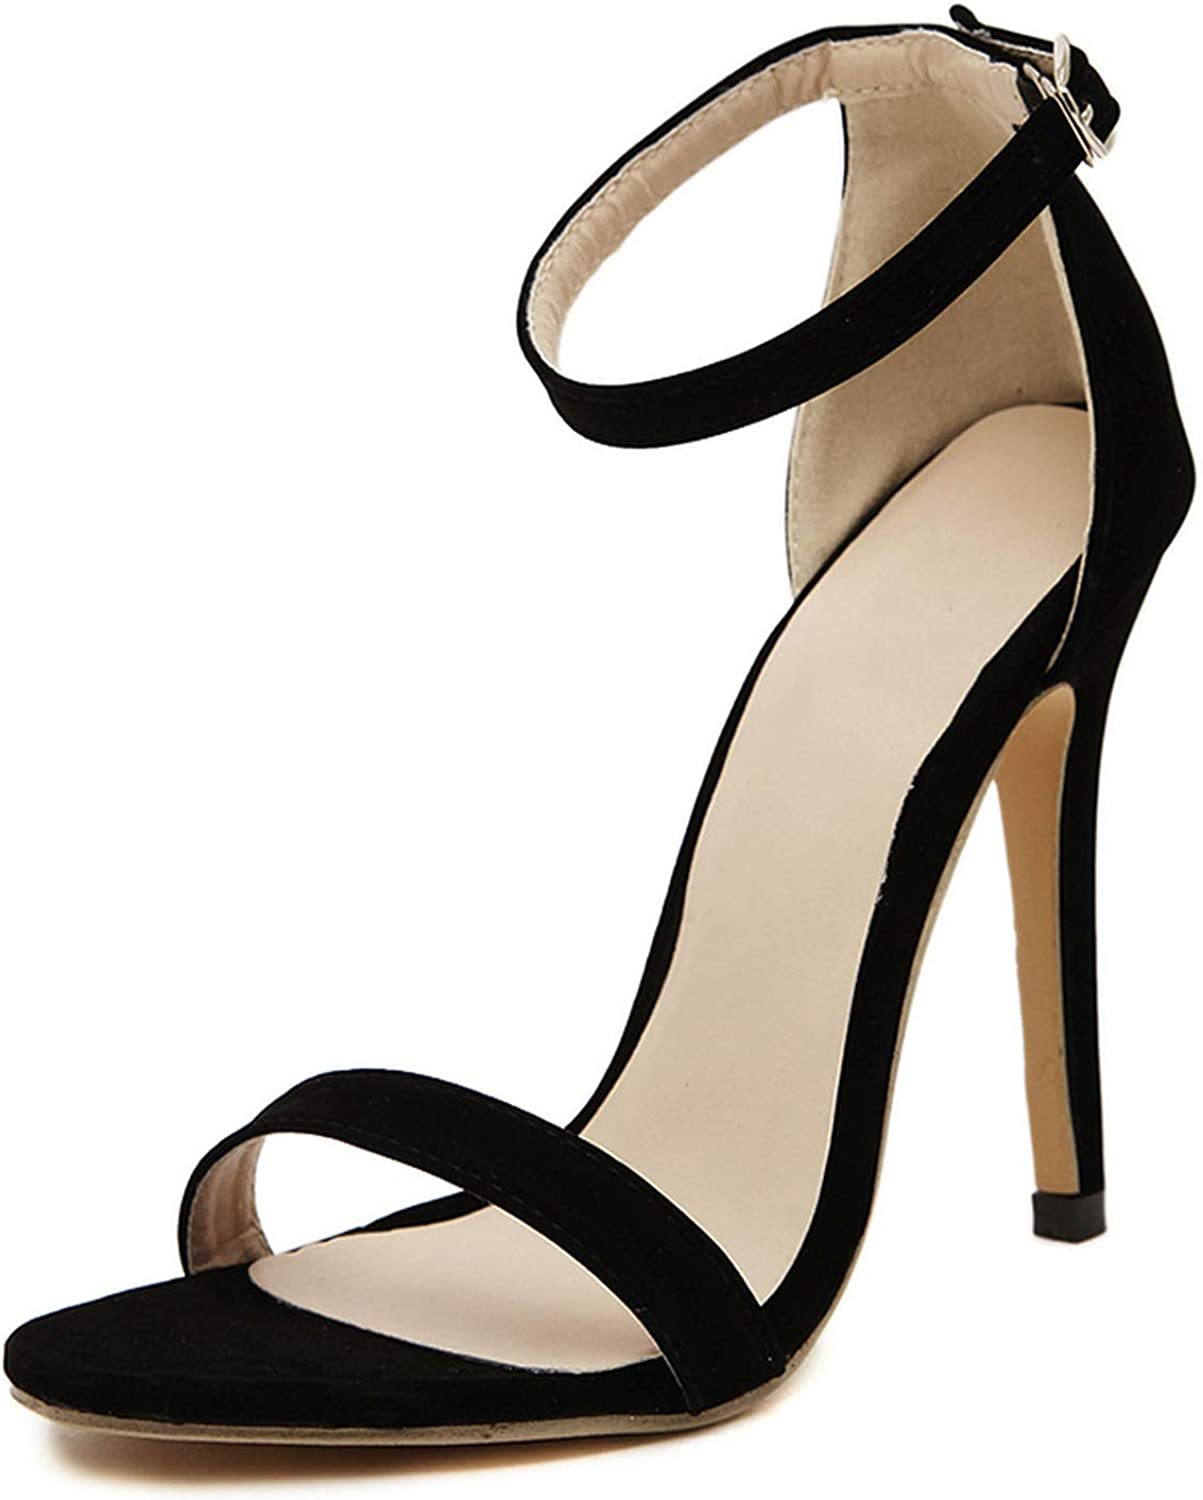 Paramise sandal Women Thin High Heels Plus Size Ankle Strap Female Sexy Party Wedding shoes for Ladies Stilettos